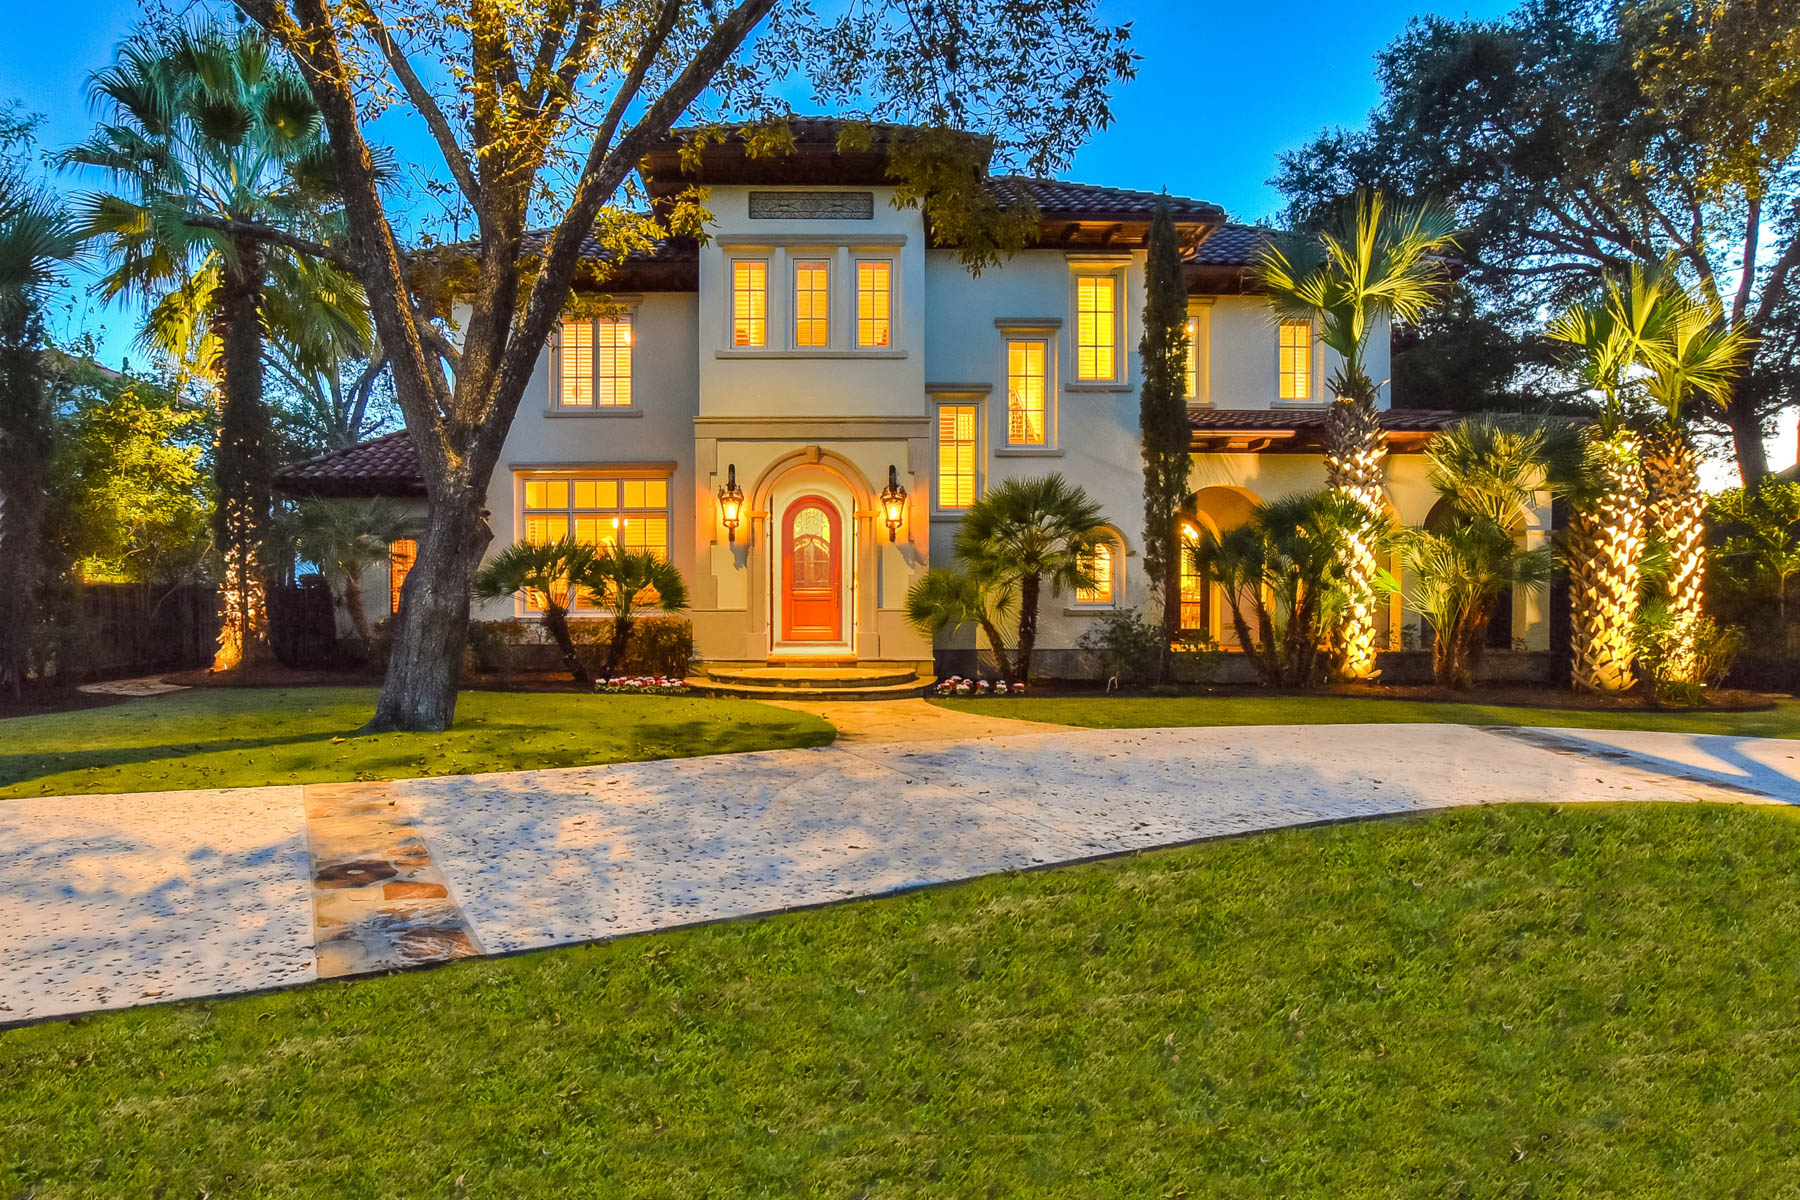 Single Family Home for Sale at Timeless Style and Sophisticated Grandeur 512 Terrell Road, San Antonio, Texas, 78209 United States